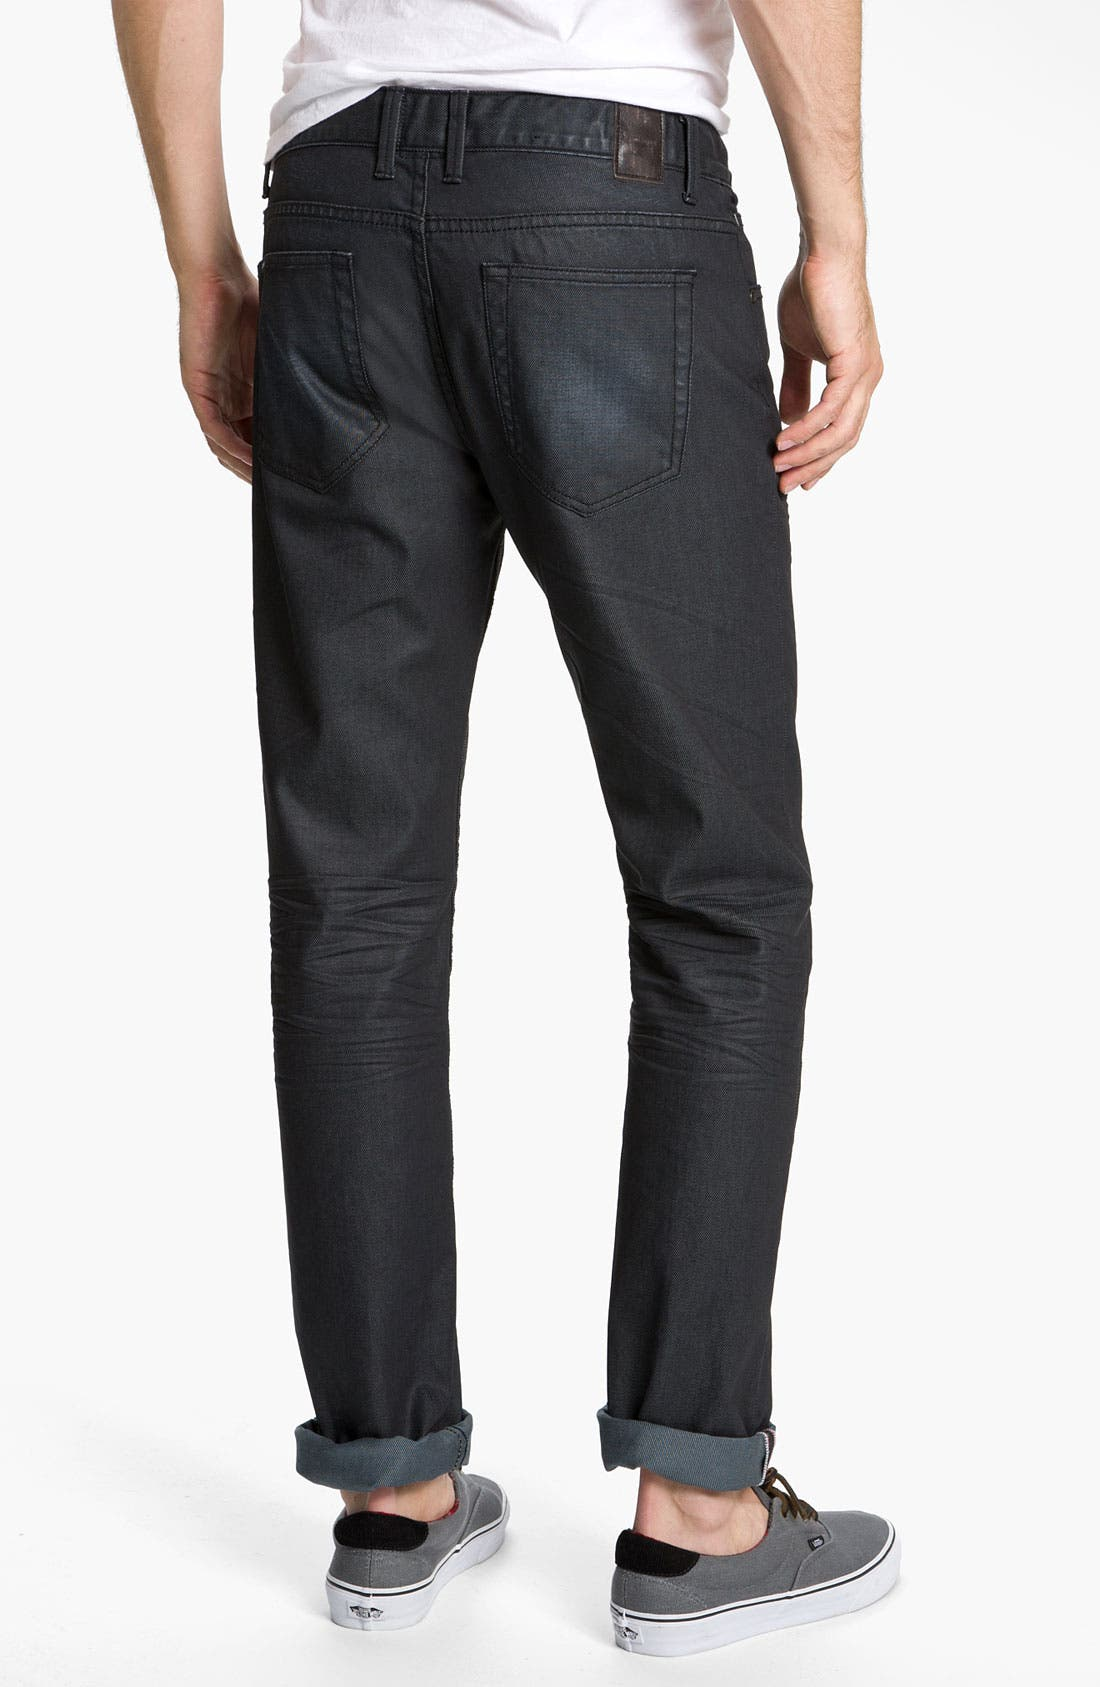 Alternate Image 1 Selected - Zanerobe 'Straight Mate' Coated Slim Straight Leg Jeans (Blue Black Wax)